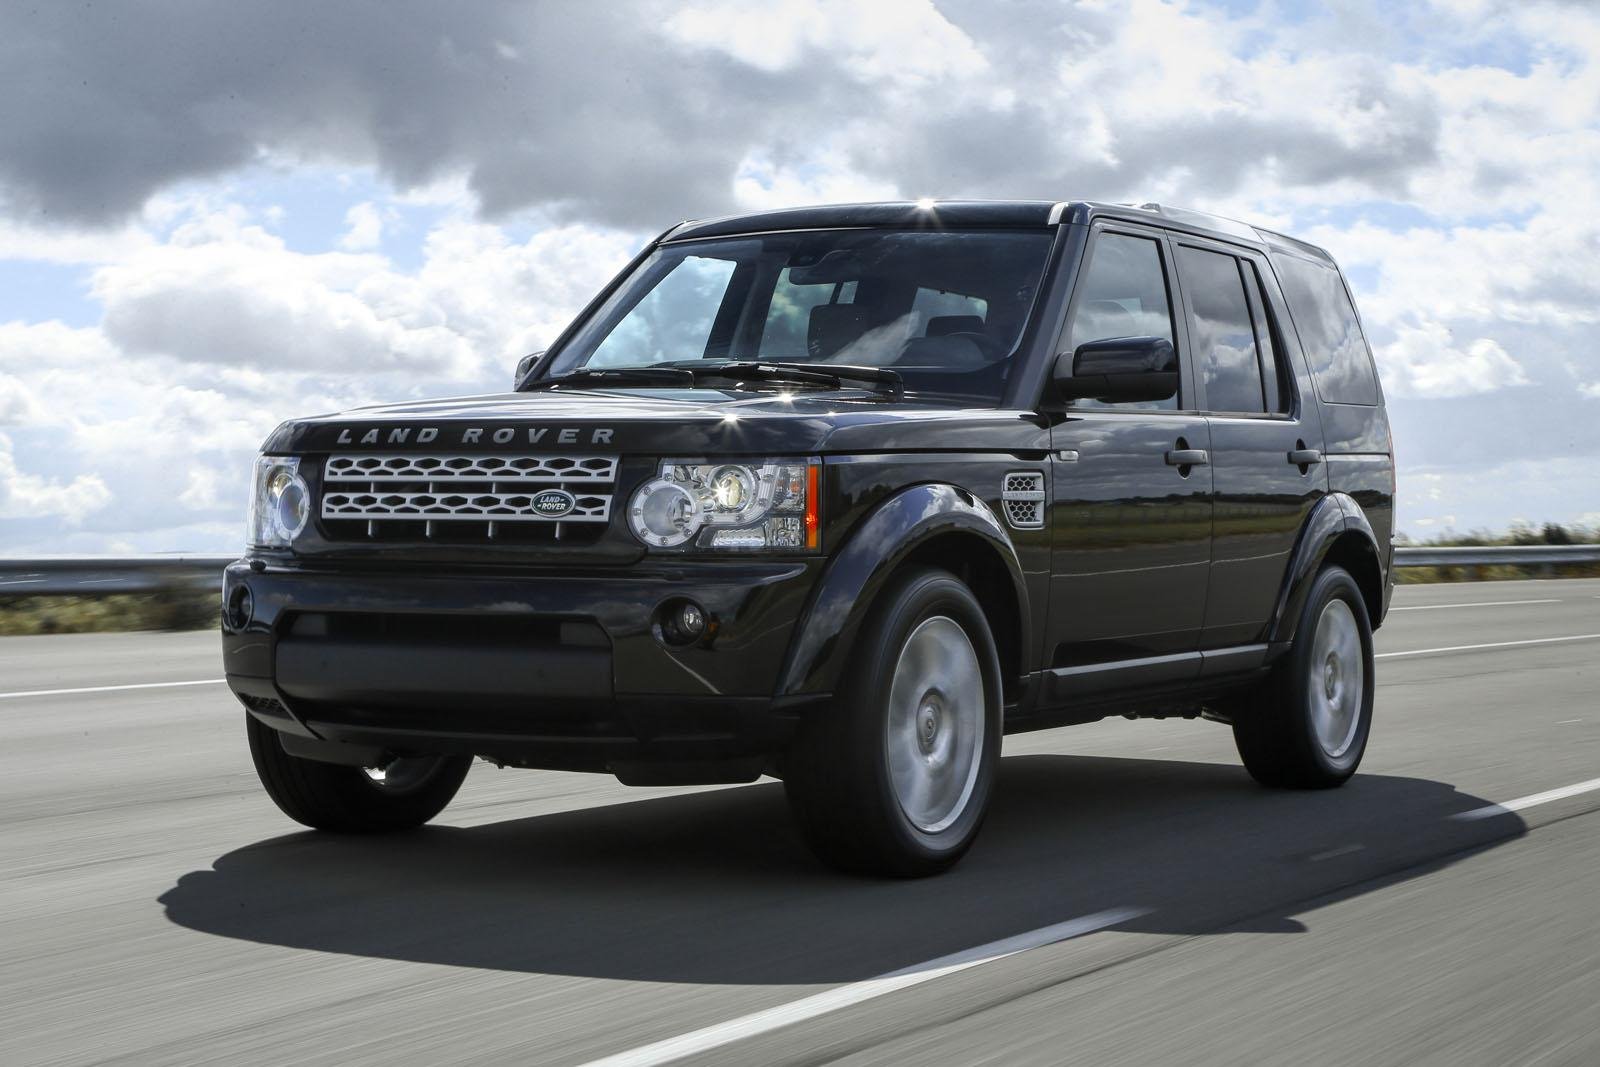 2013 Land Rover Discovery Suv 5-door